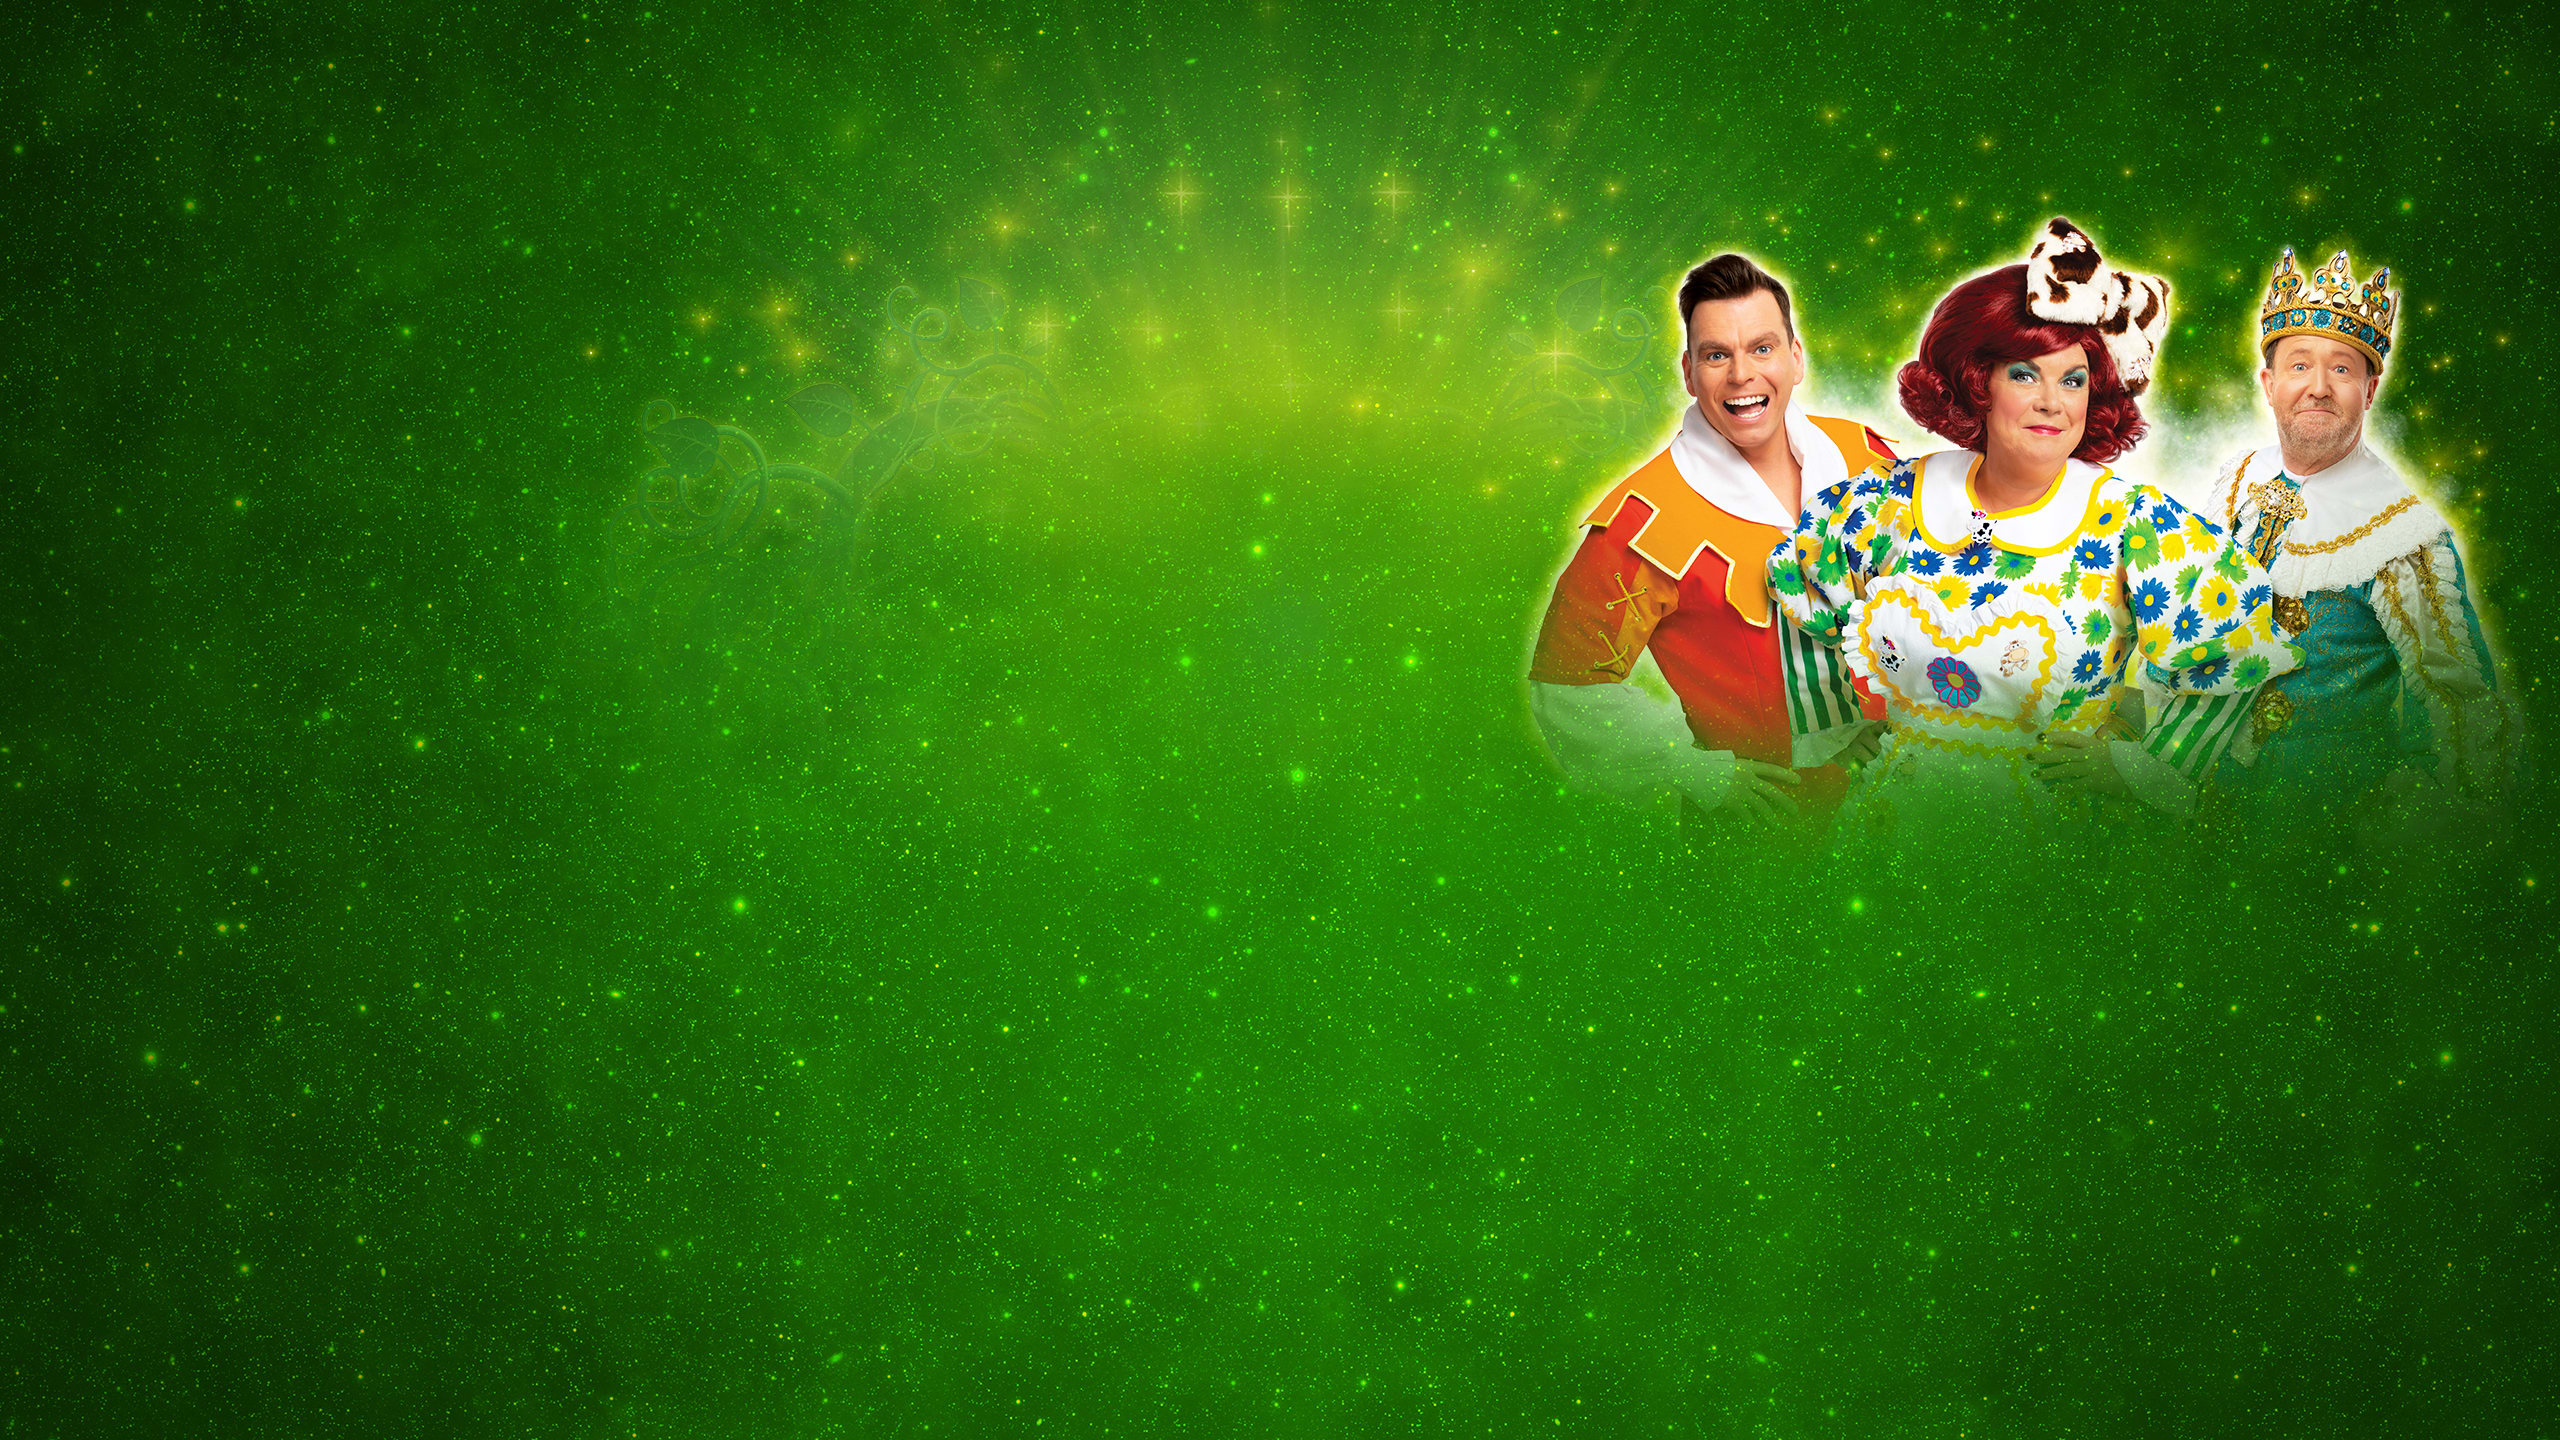 Jack and the Beanstalk header